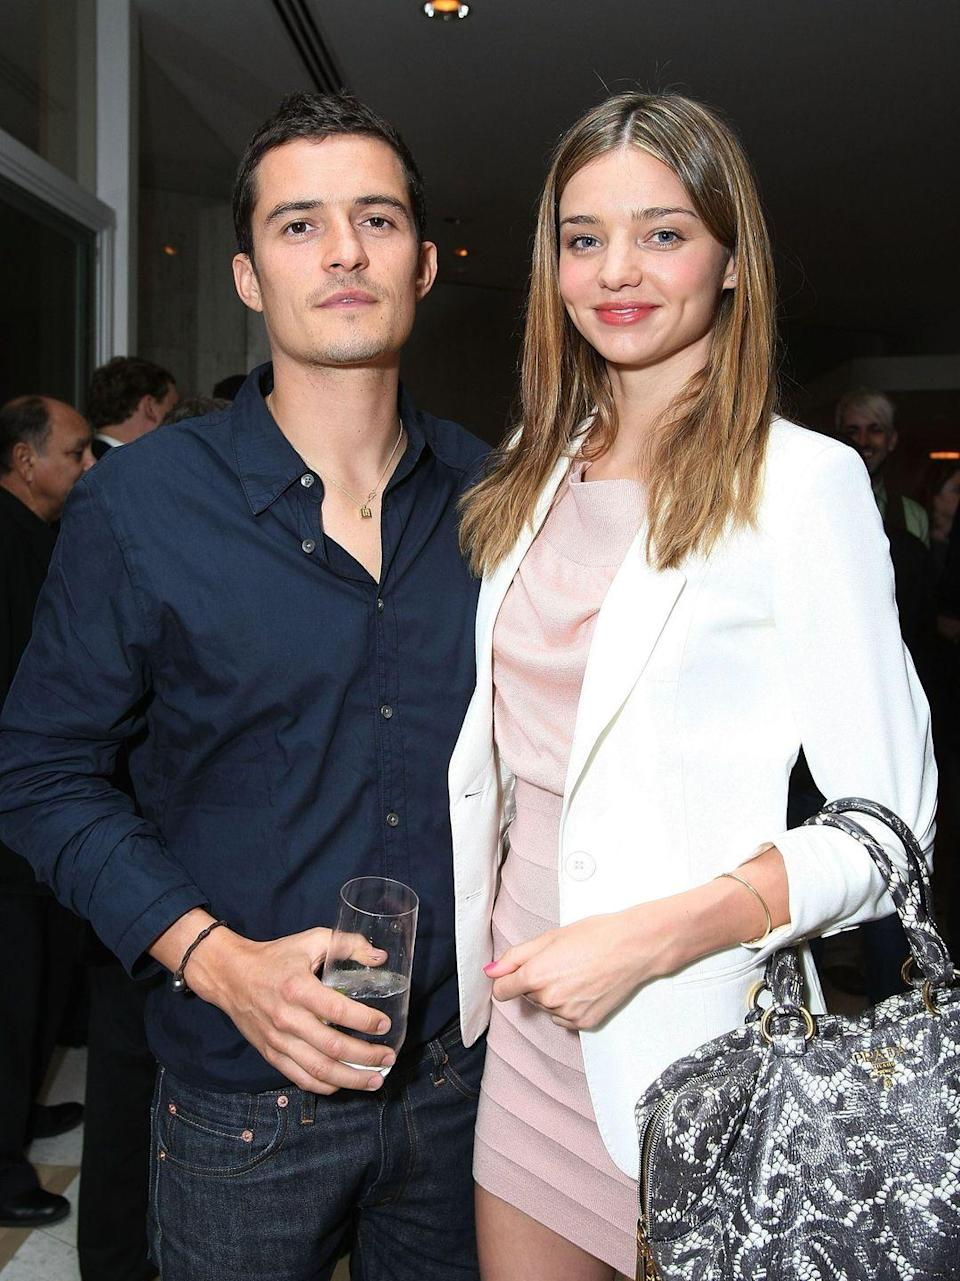 <p>The secret wedding between Orlando Bloom and Miranda Kerr took place in June 2010, only a month after they got engaged. The couple began dating in 2007 and have one son together named Flynn. They ended their relationship in 2013. </p>